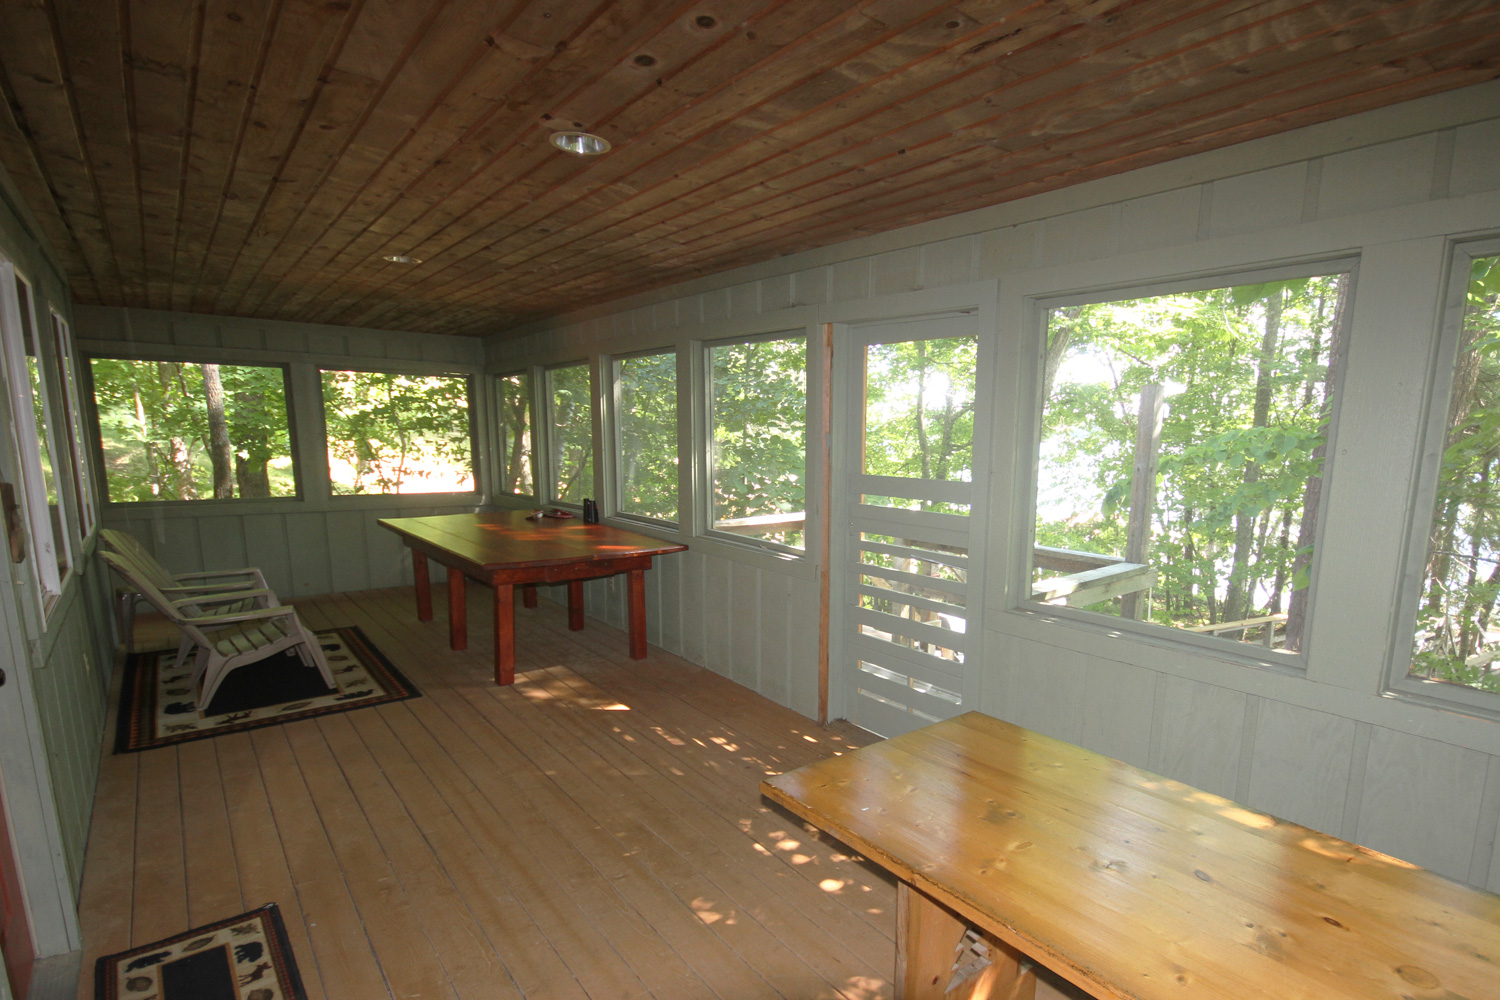 Wrap around deck provides a variety of views